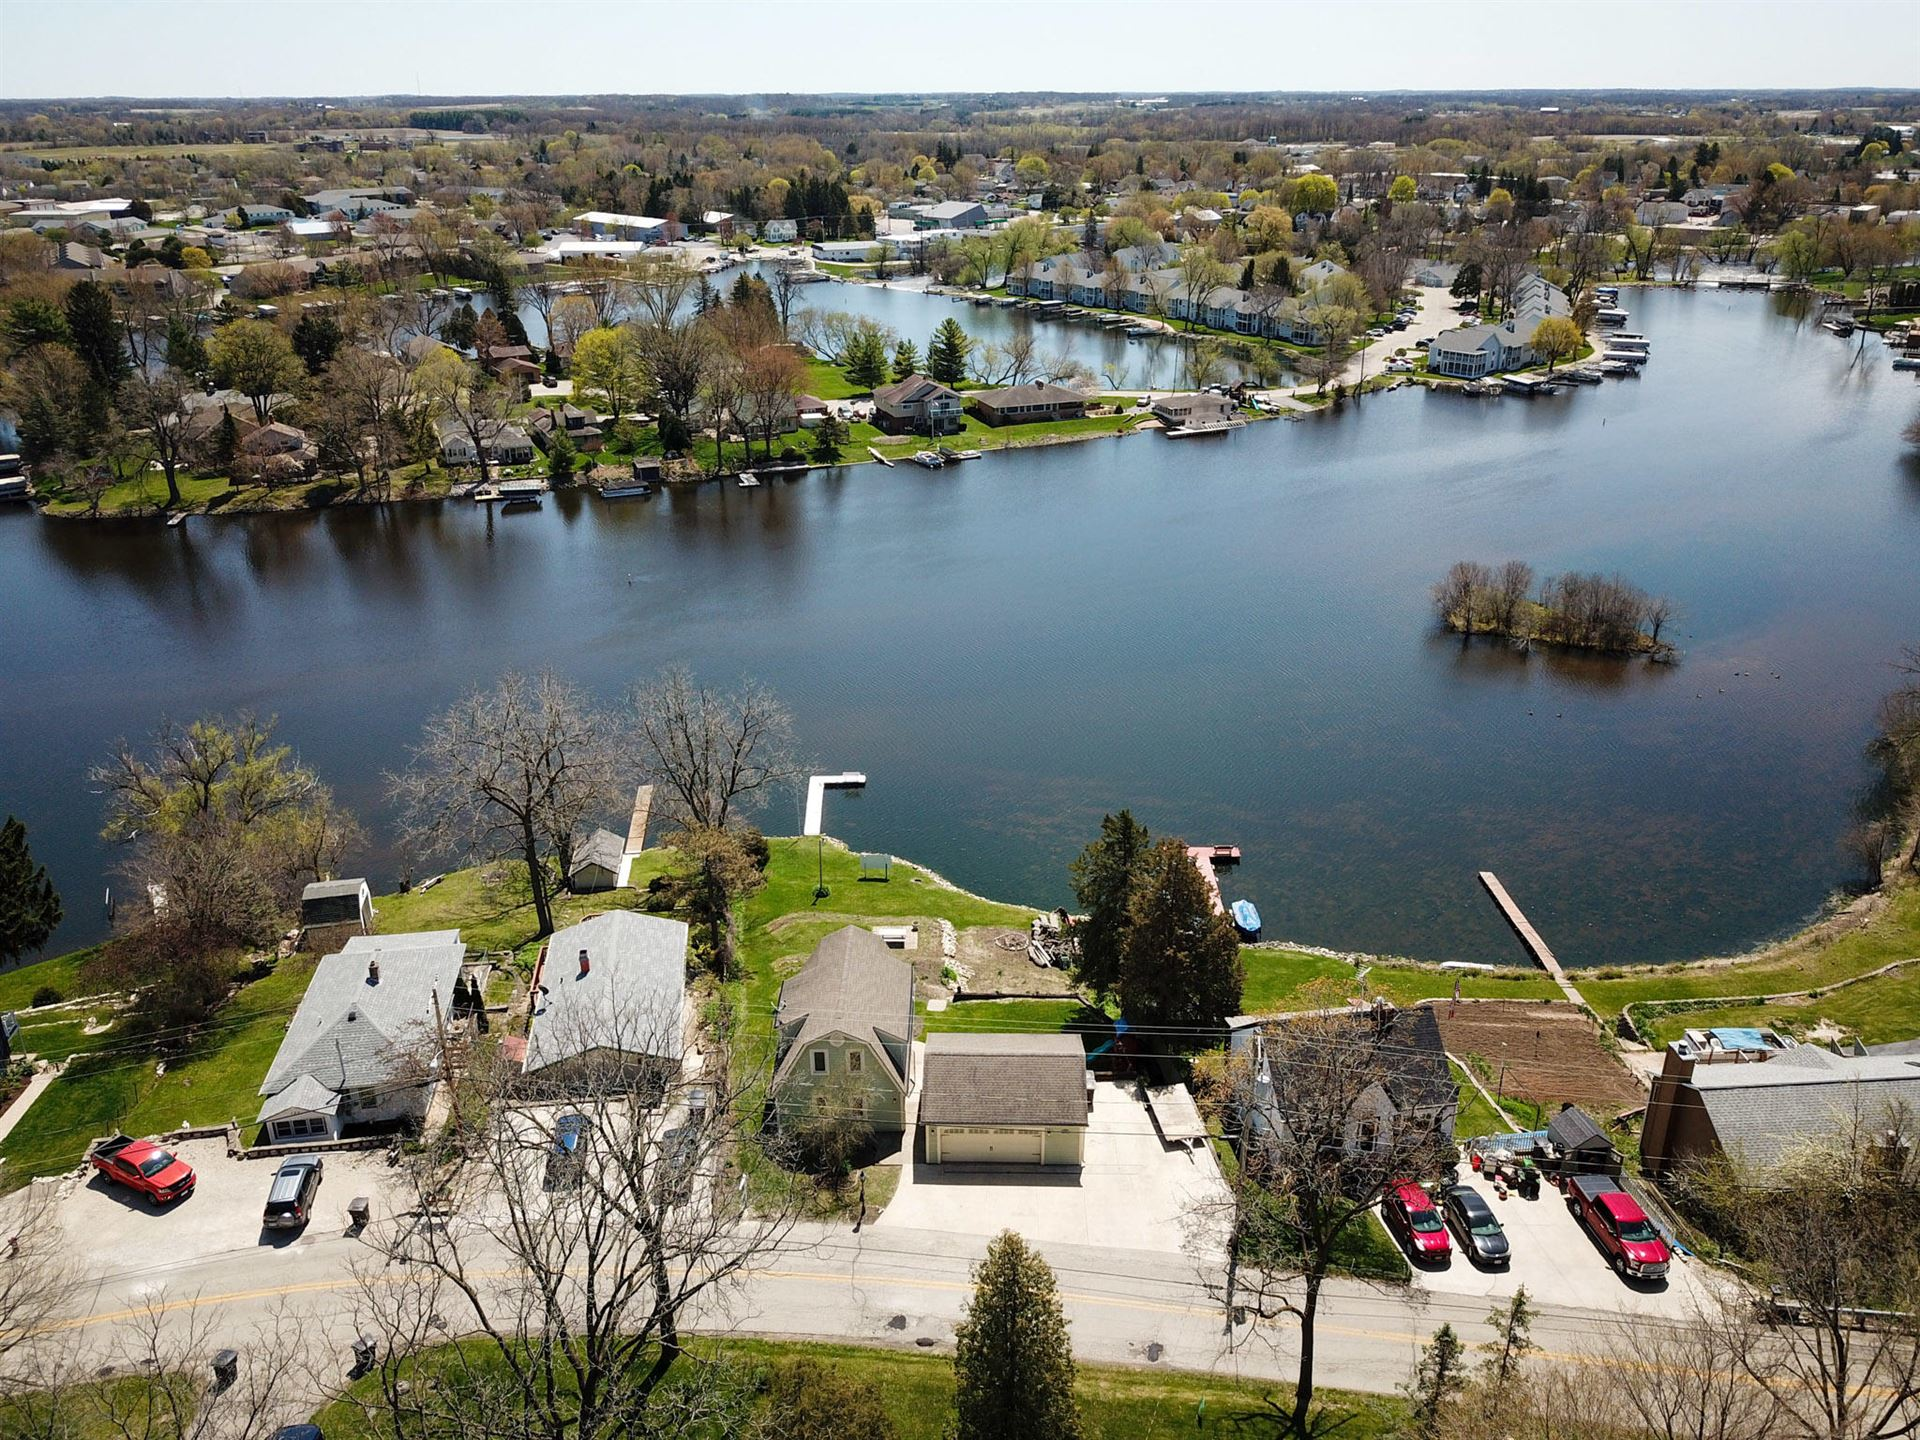 125 Riverside Dr, Waterford, WI 53185 - #: 1686718